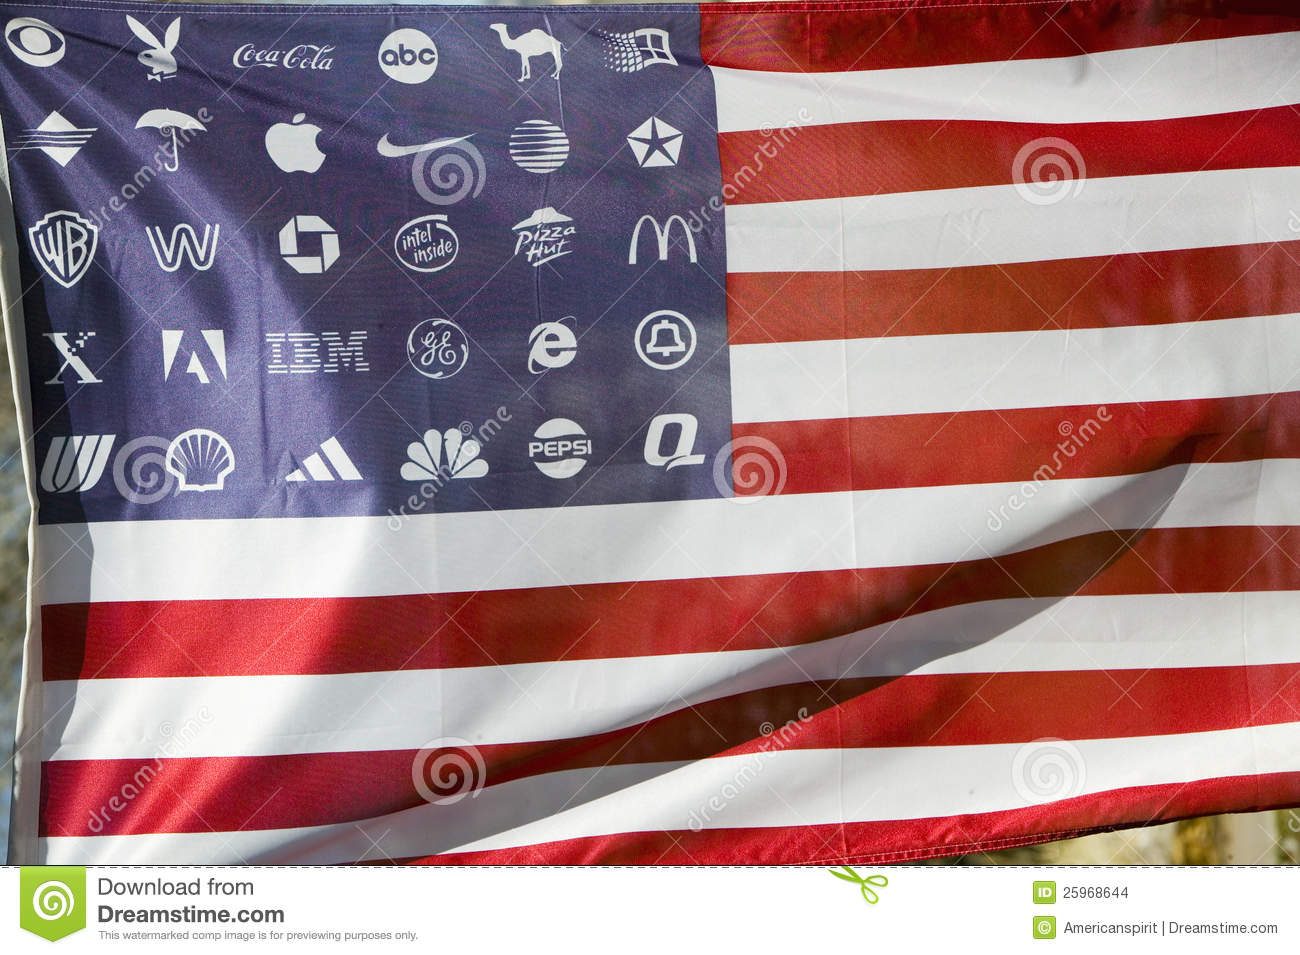 Corporate logos in place of stars on the American